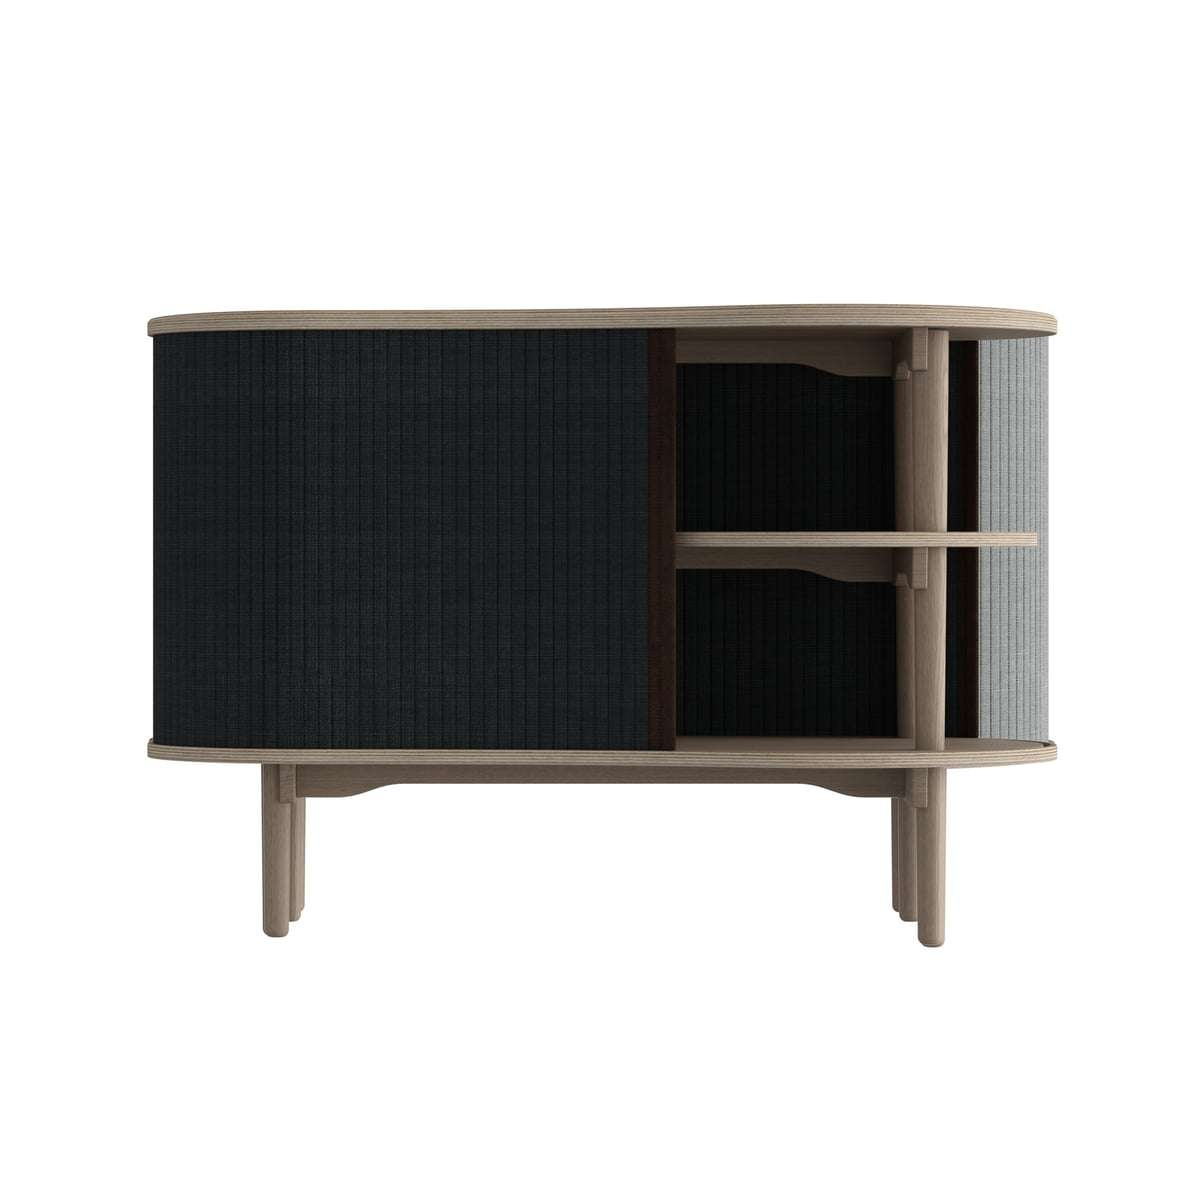 Sideboard Audaciousvitra | Connox For Silver Sideboards (View 9 of 20)